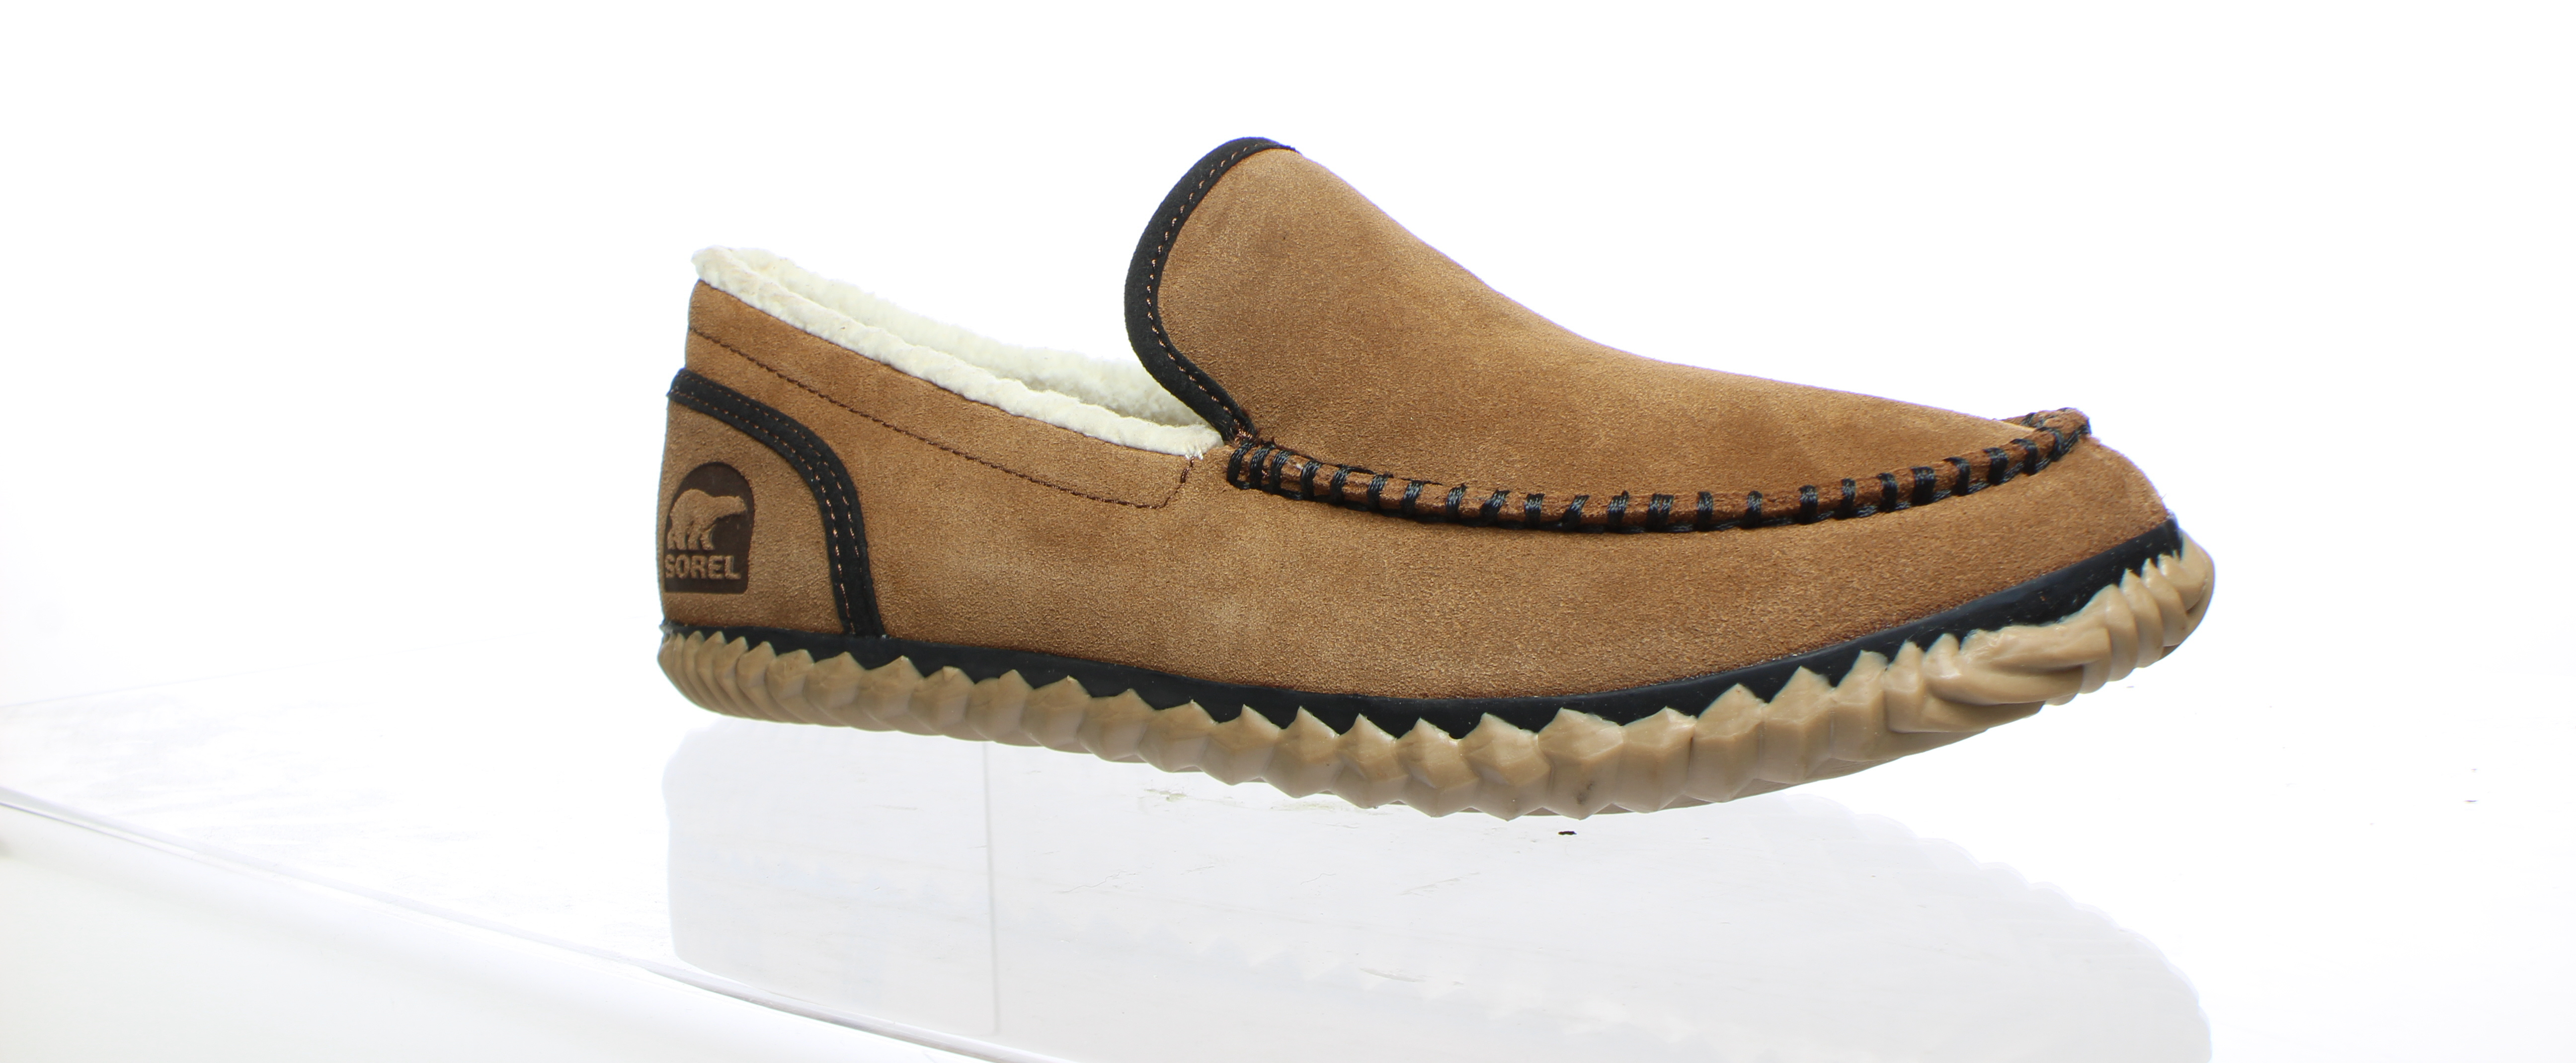 2876e731e18 SOREL Mens Dude Moc Grizzly Bear Moccasin Slippers Size 10.5 ...